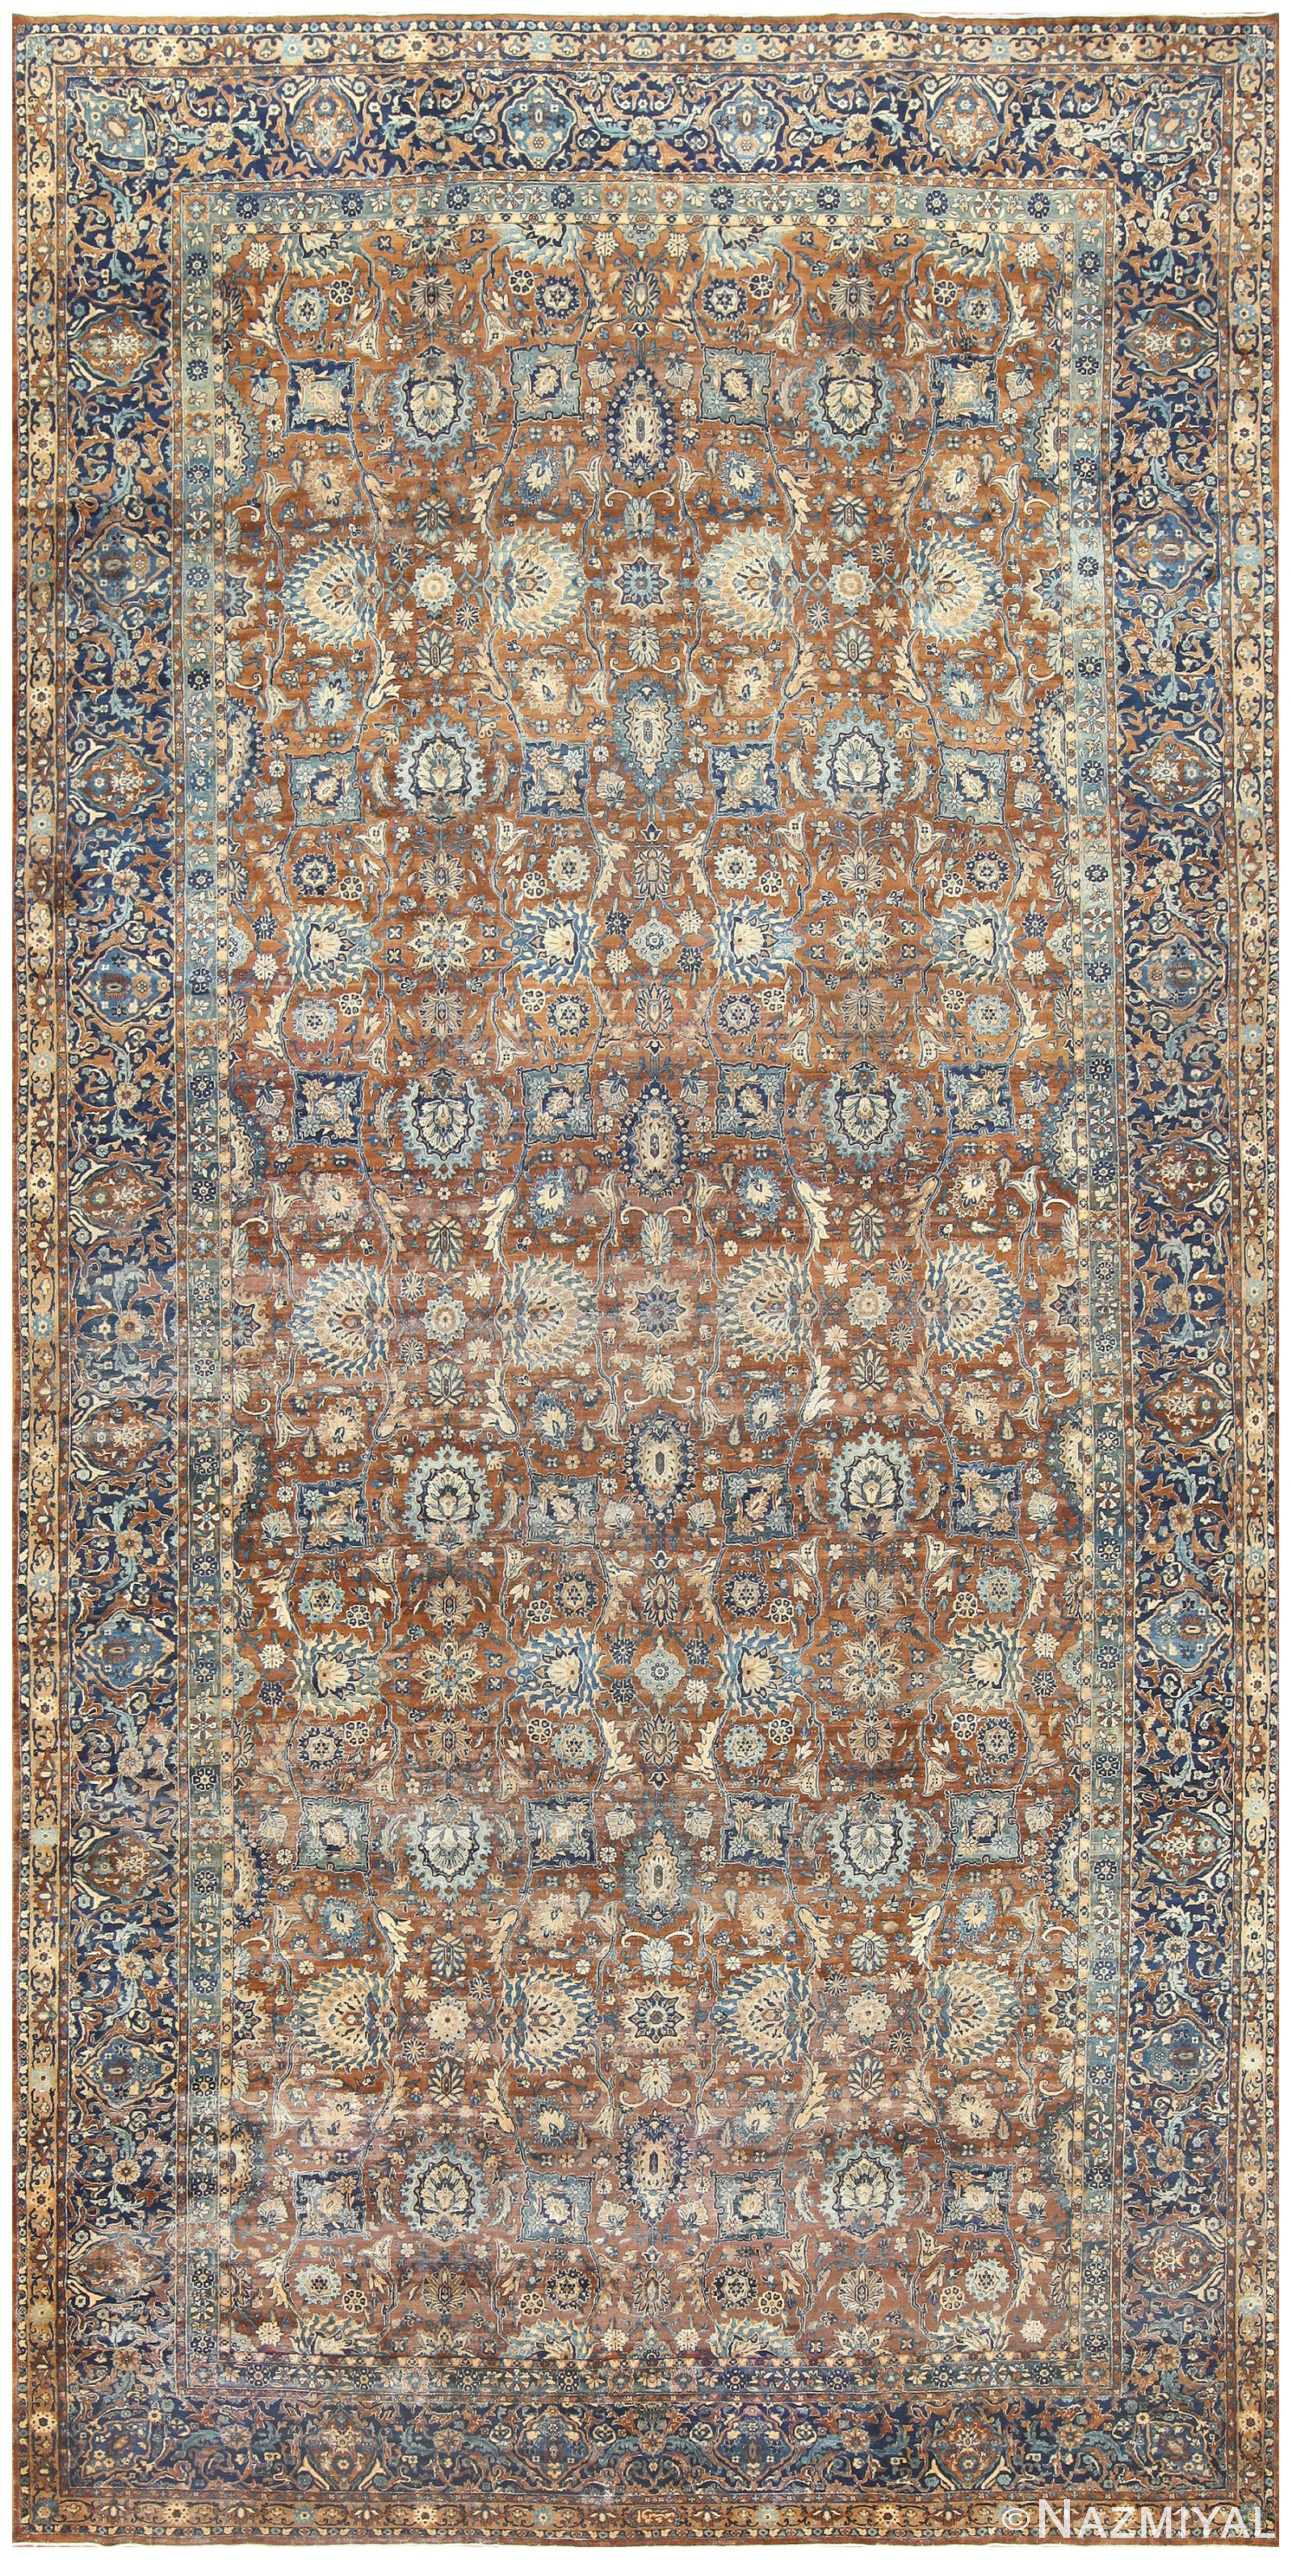 Brown and Blue Oversized Antique Persian Kerman Carpet 50192 Nazmiyal